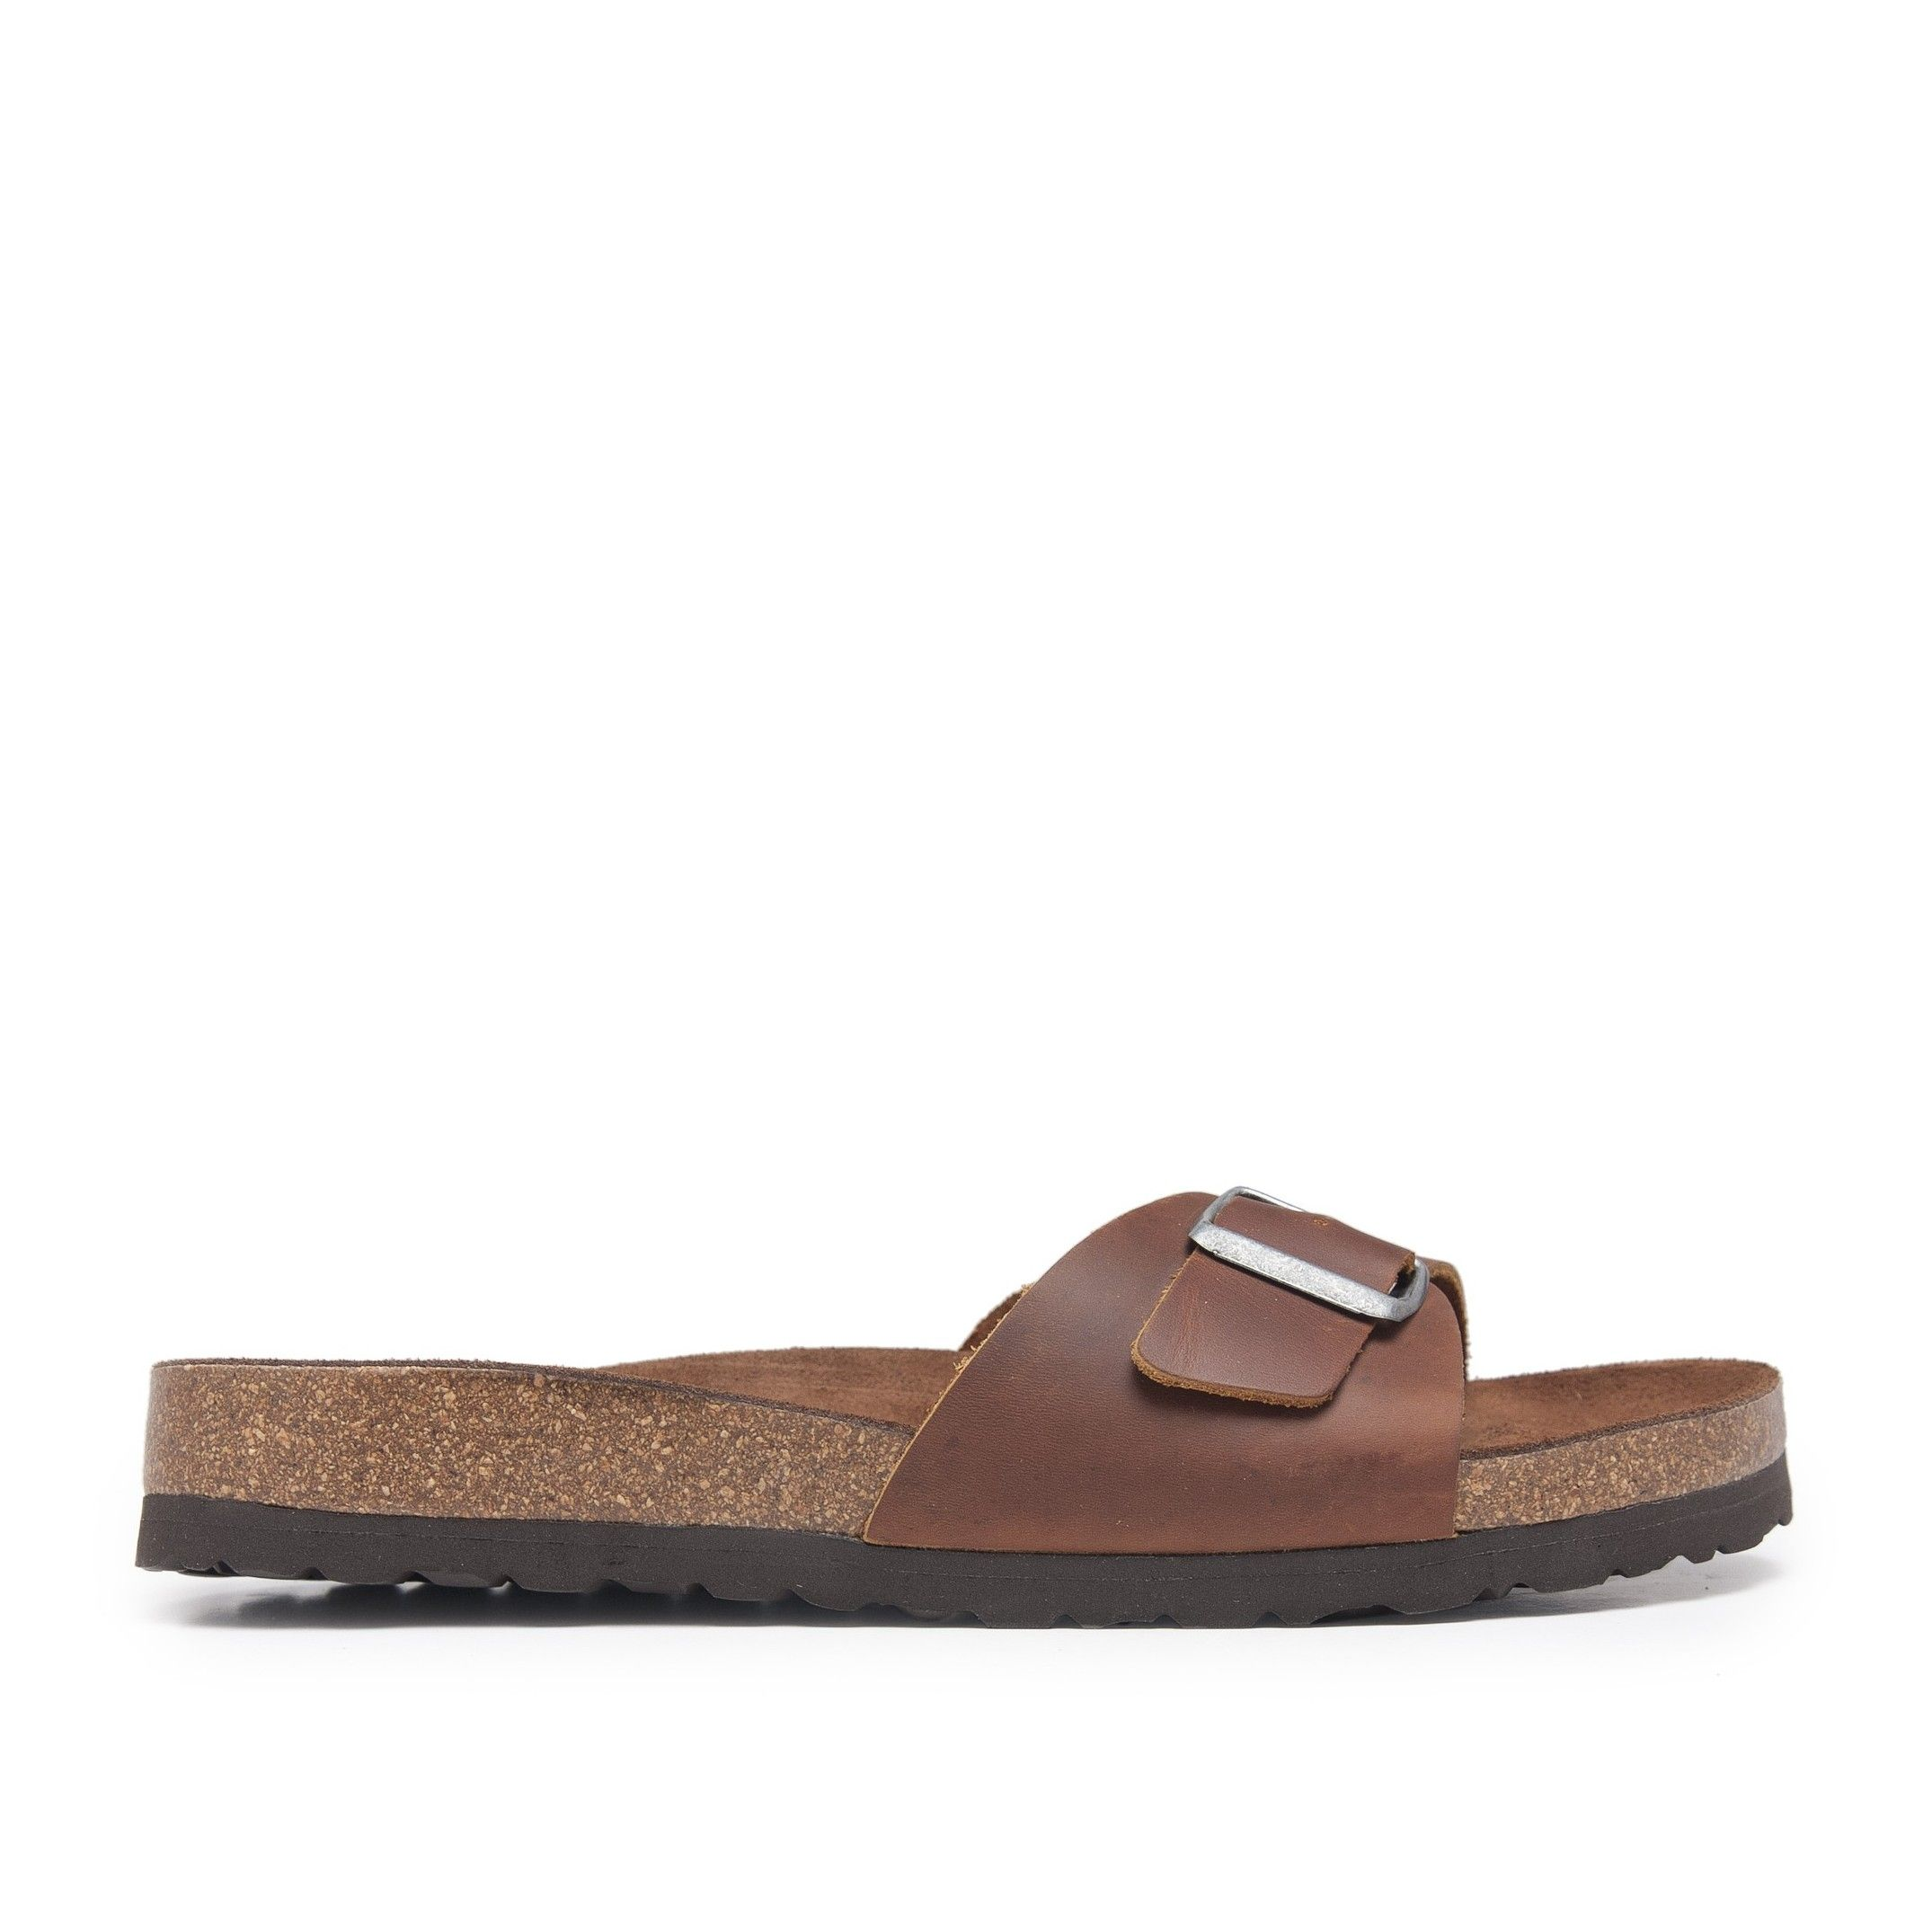 Bio Sandals for Men Summer Brown Shoes Castellanisimos